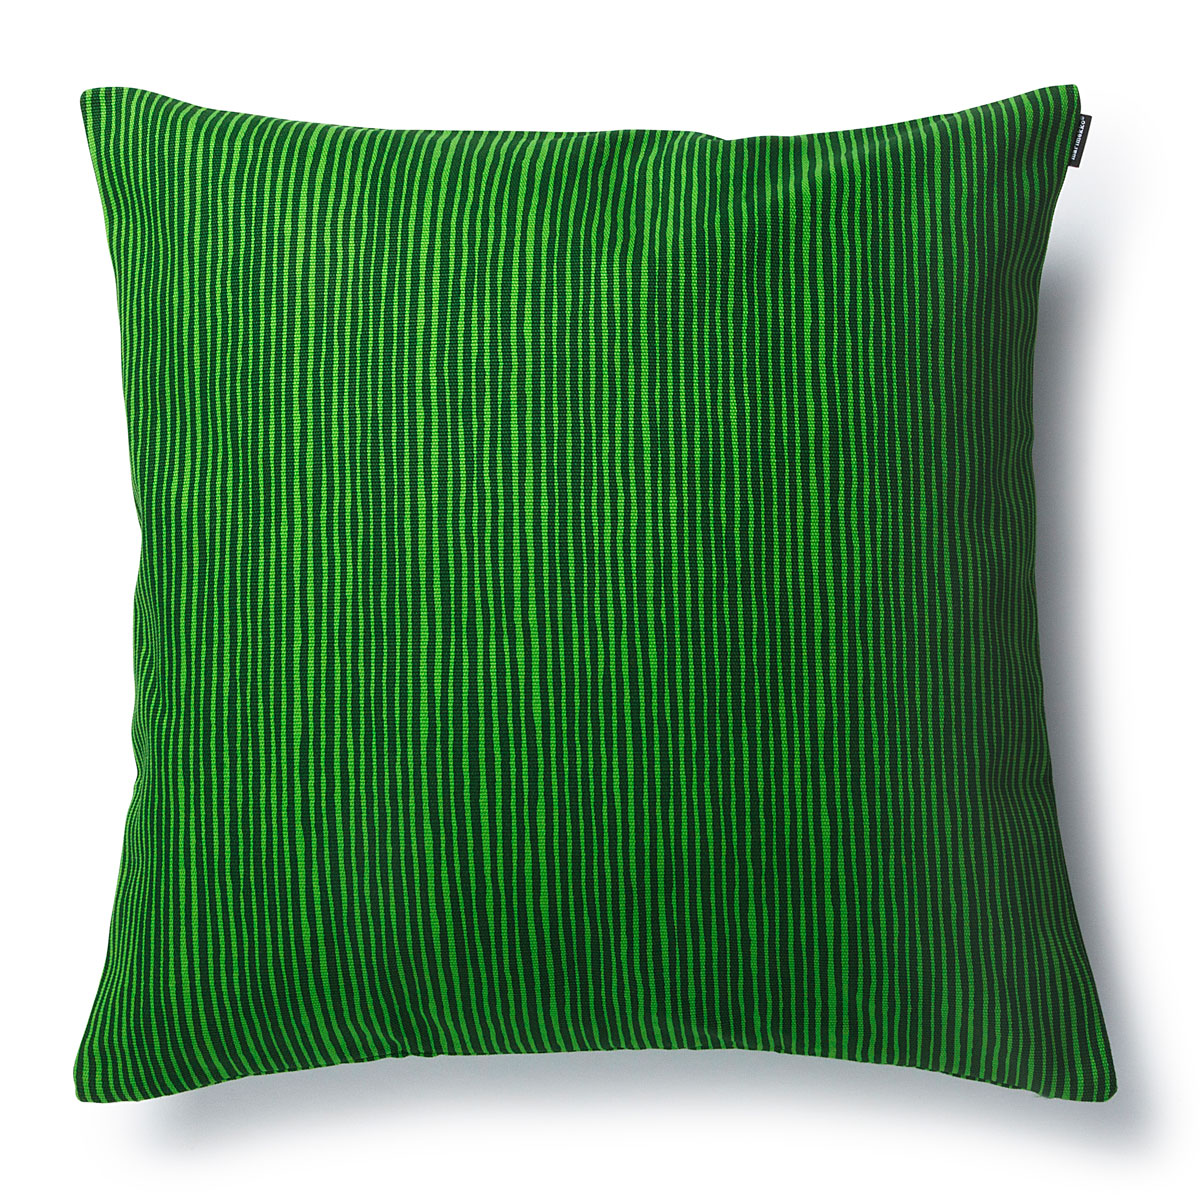 Decorative Pillows With Green : Marimekko Varvunraita Green Throw Pillow - Holiday Home Accents